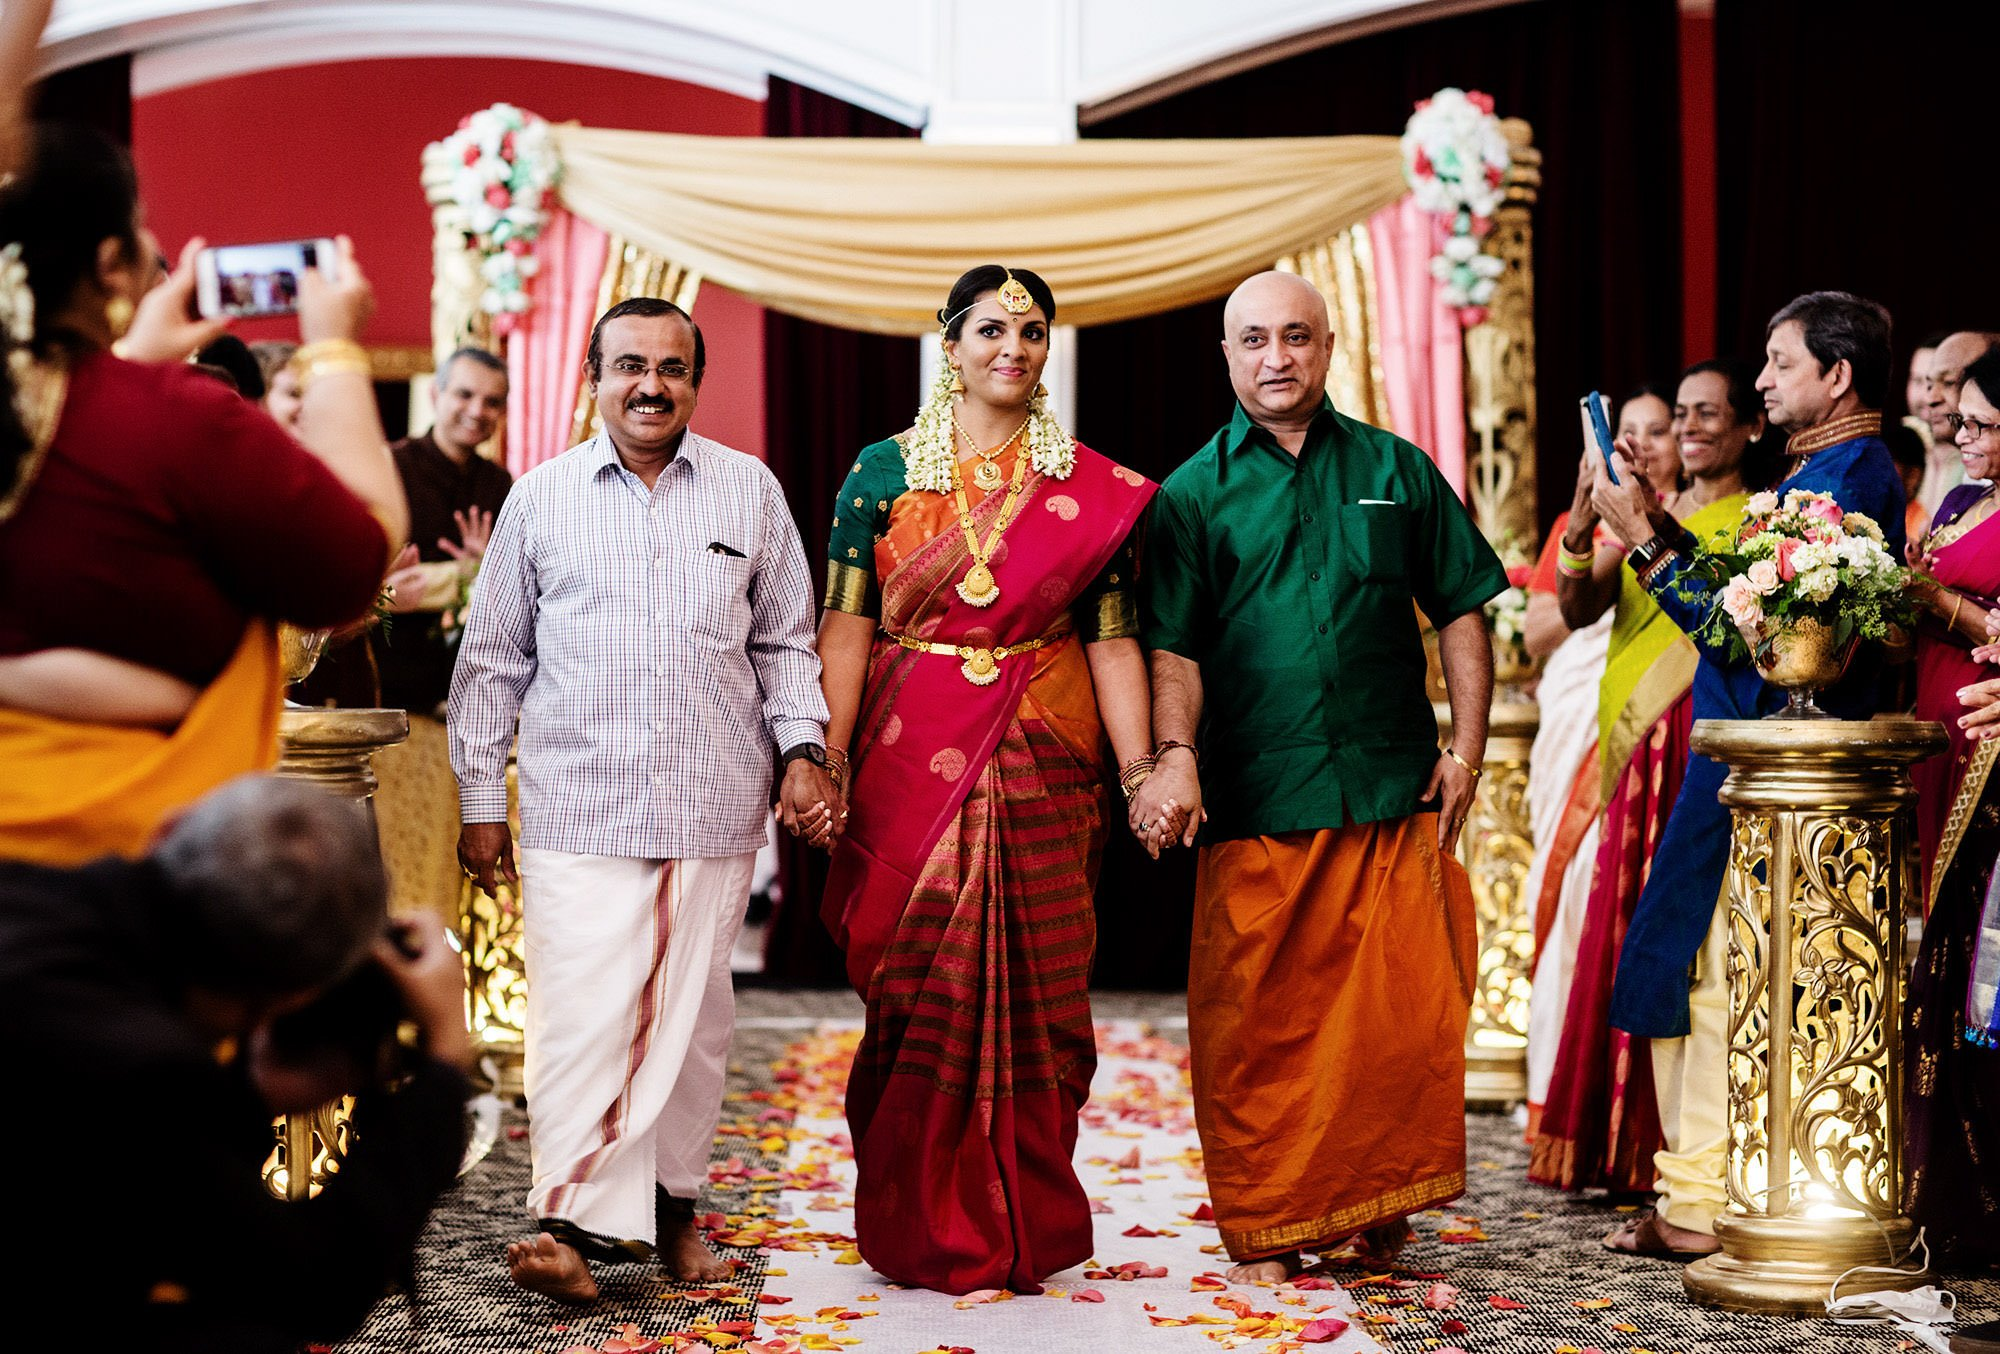 Foxchase Manor Wedding in Manassas, VA  I  Bride Processional, Hindu Ceremony, Indian Wedding